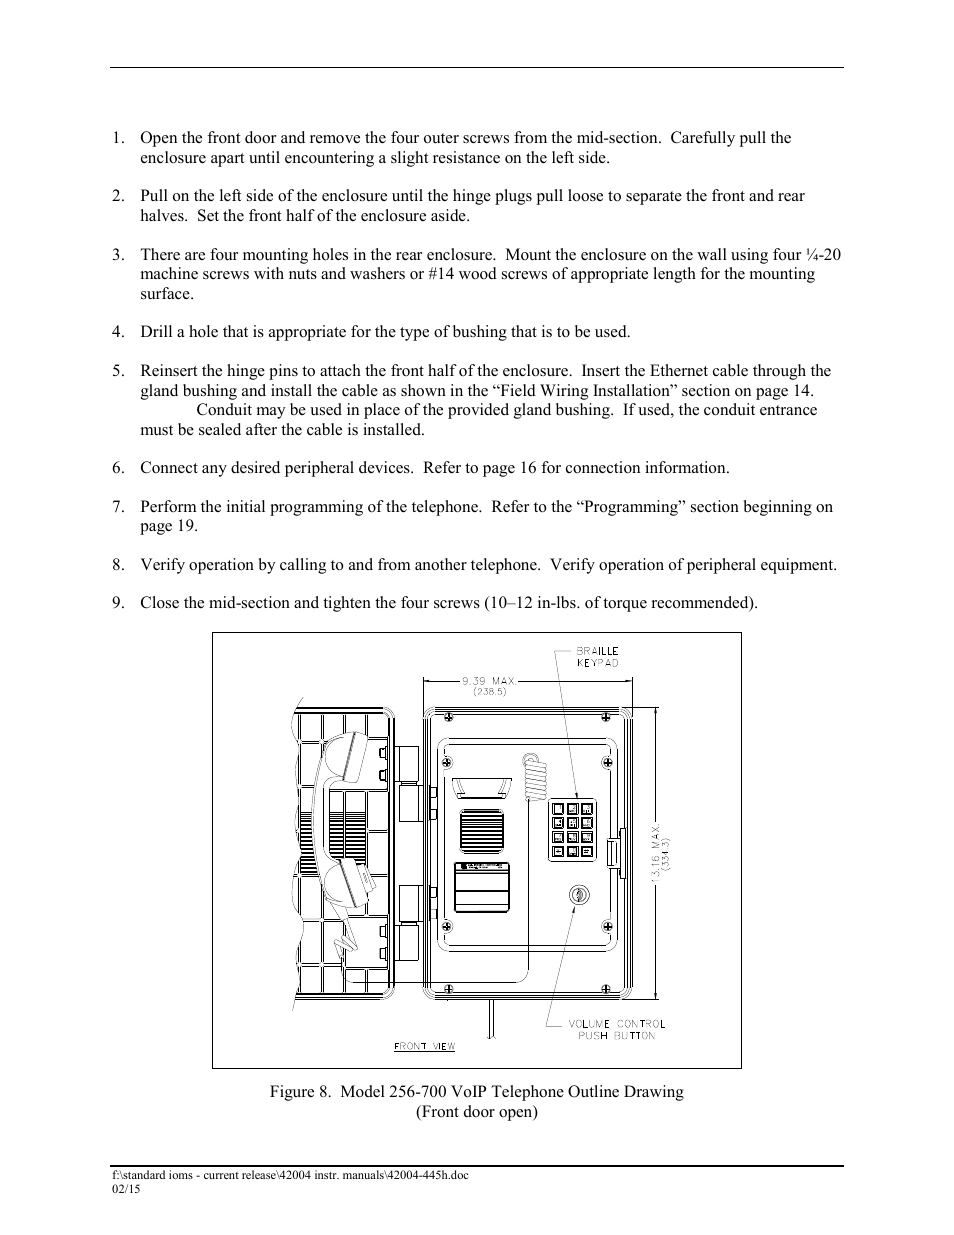 Model 256 700 Gai Tronics 226 Hanset Voip Telephones With Wiring Diagram Keypad User Manual Page 12 27